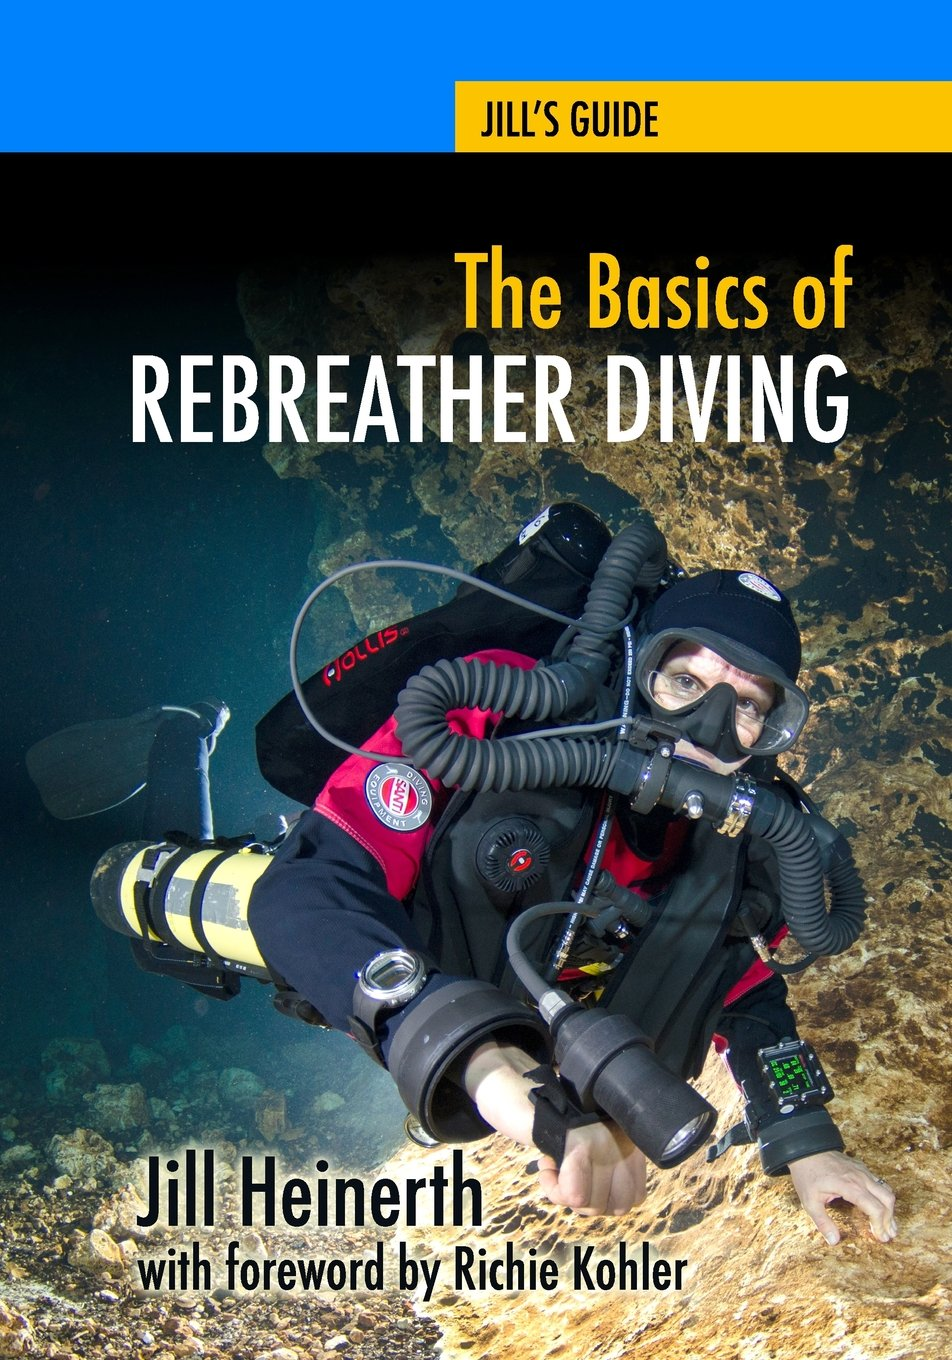 The Basics of Rebreather Diving: Beyond SCUBA to Explore the Underwater World (Jill's Guides) (Volume 4)